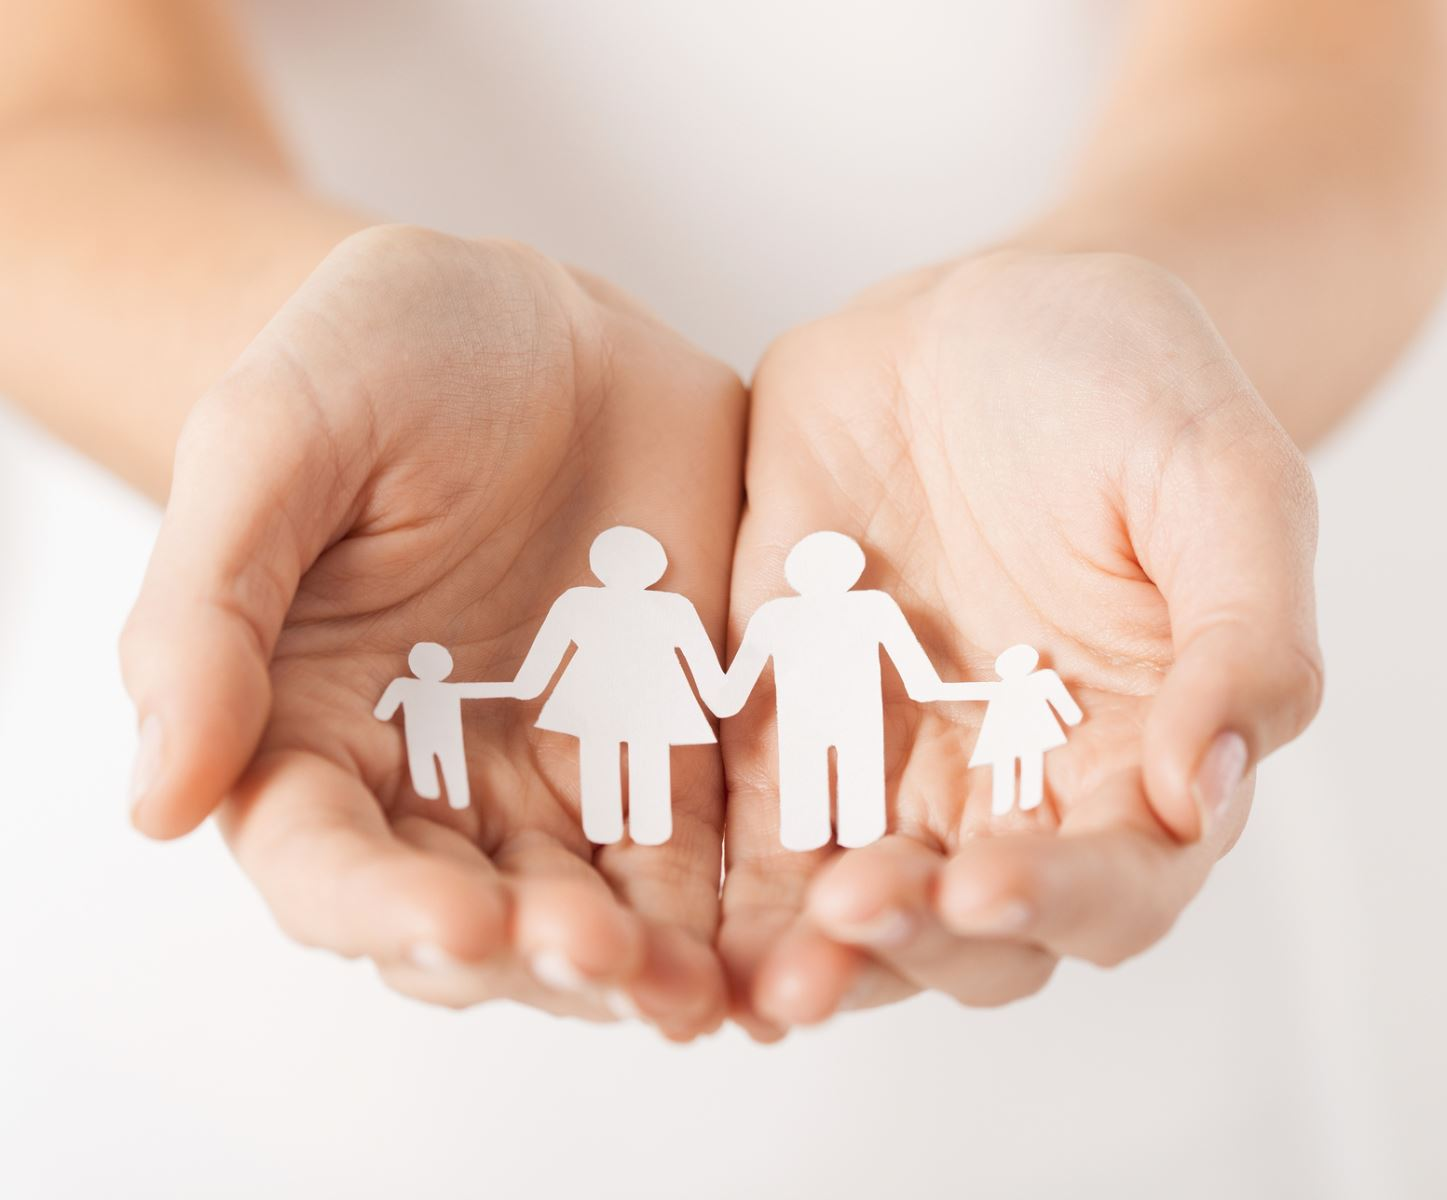 Couples child Counselling personal counseling holding hands at psychological counseling center velachery, chennai, tamilnadu